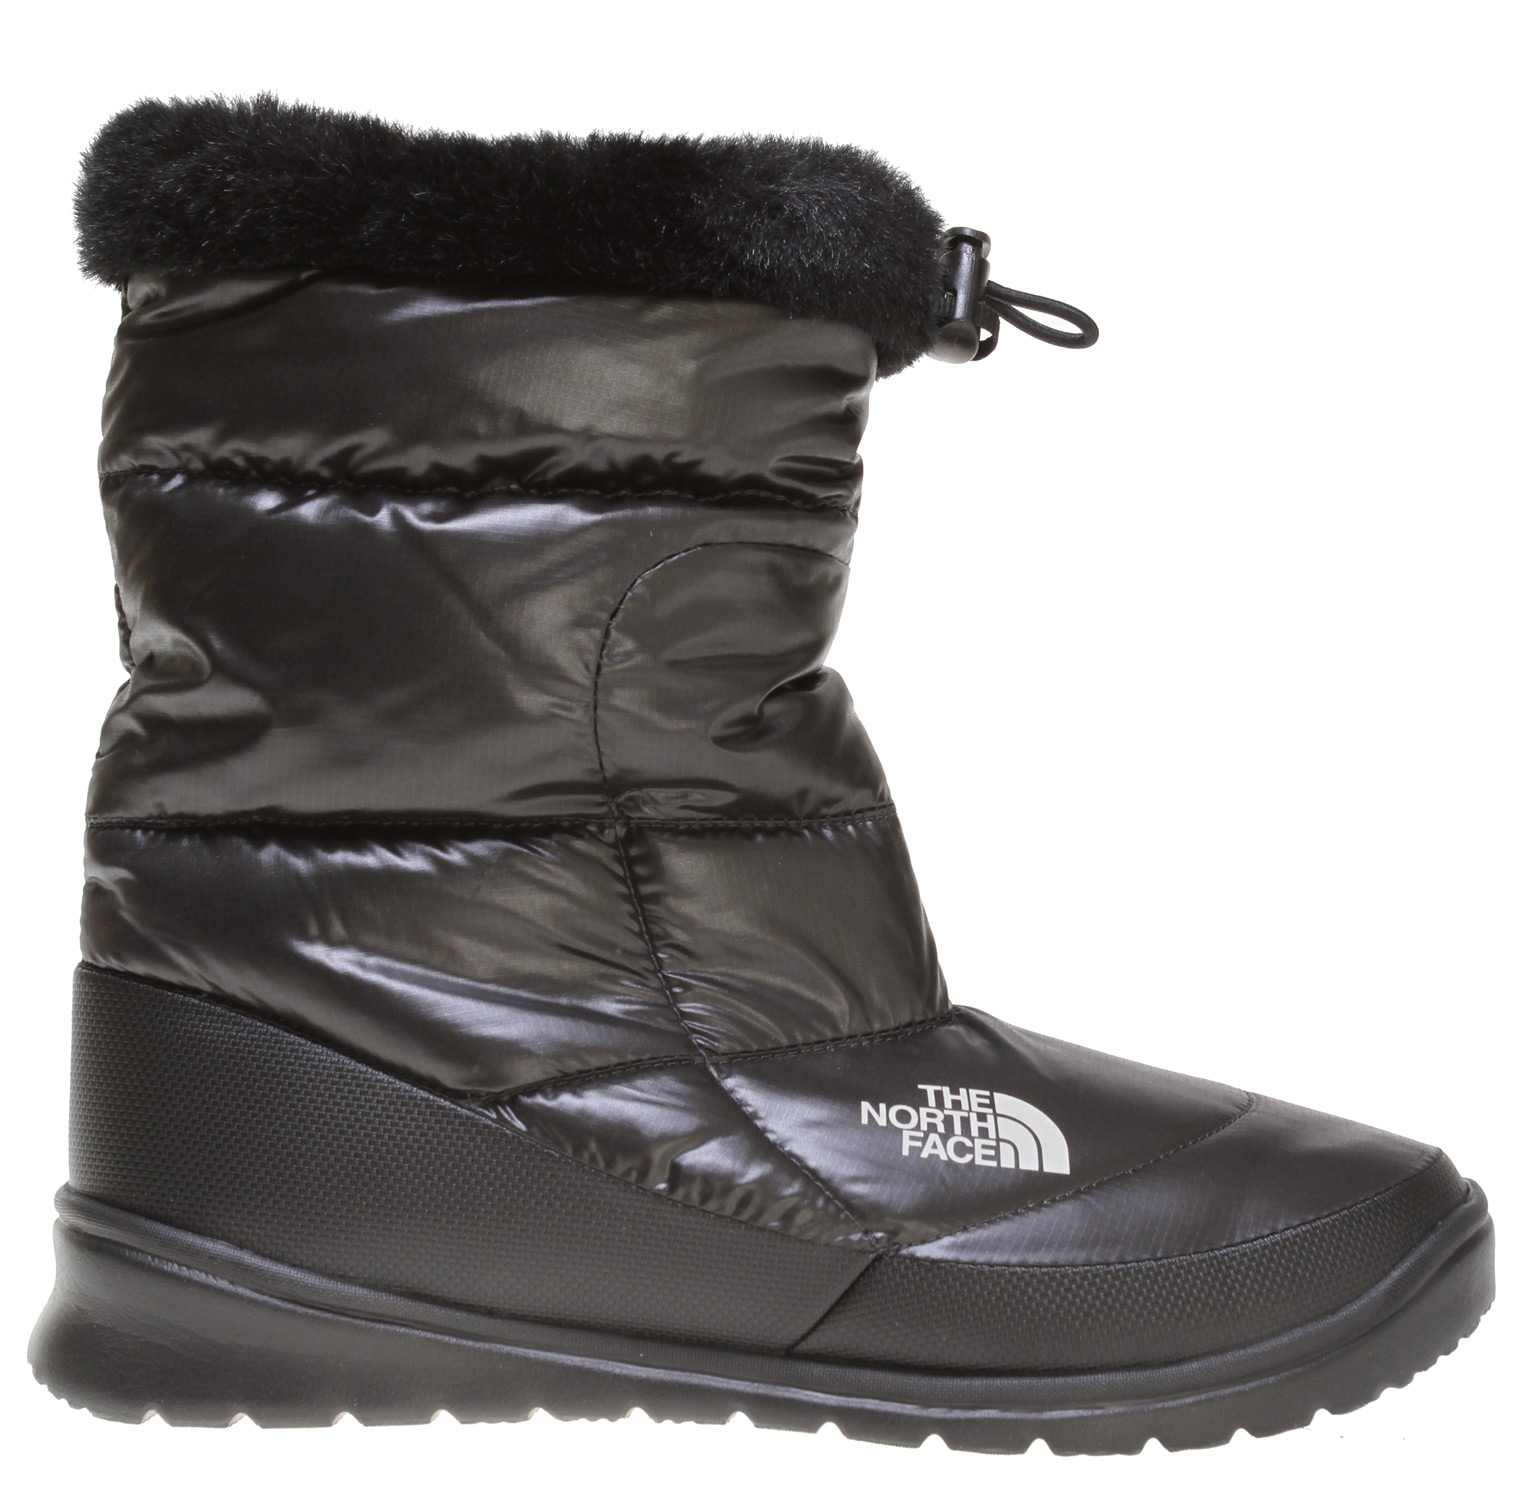 An everyday, everywhere winter boot with an adventurous style and durability you expect with The North Face, this down-insulated lace-up is a winter-time favorite. Insulated with a plush 600 fill down, this popular boot includes a cozy faux fur lining and a DWR (durable water repellent) finish at exterior for extra weather-resistance. Updated for 2010 with new quilting lines.Key Features of The North Face Nuptse Fur IV Boots: 100% recycled P.E.T. ripstop upper with DWR (durable water repellent) finish 600 fill power down insulation 100% recycled P.E.T. faux fur trim Abrasion-resistant synthetic mudguard Compression-molded, Ortholite Northotic footbed for enhanced comfort Cut-and-buff EVA midsole Durable TNF Winter Grip rubber outsole with Ice Pick temperature-sensitive snowflake lugs - $62.95